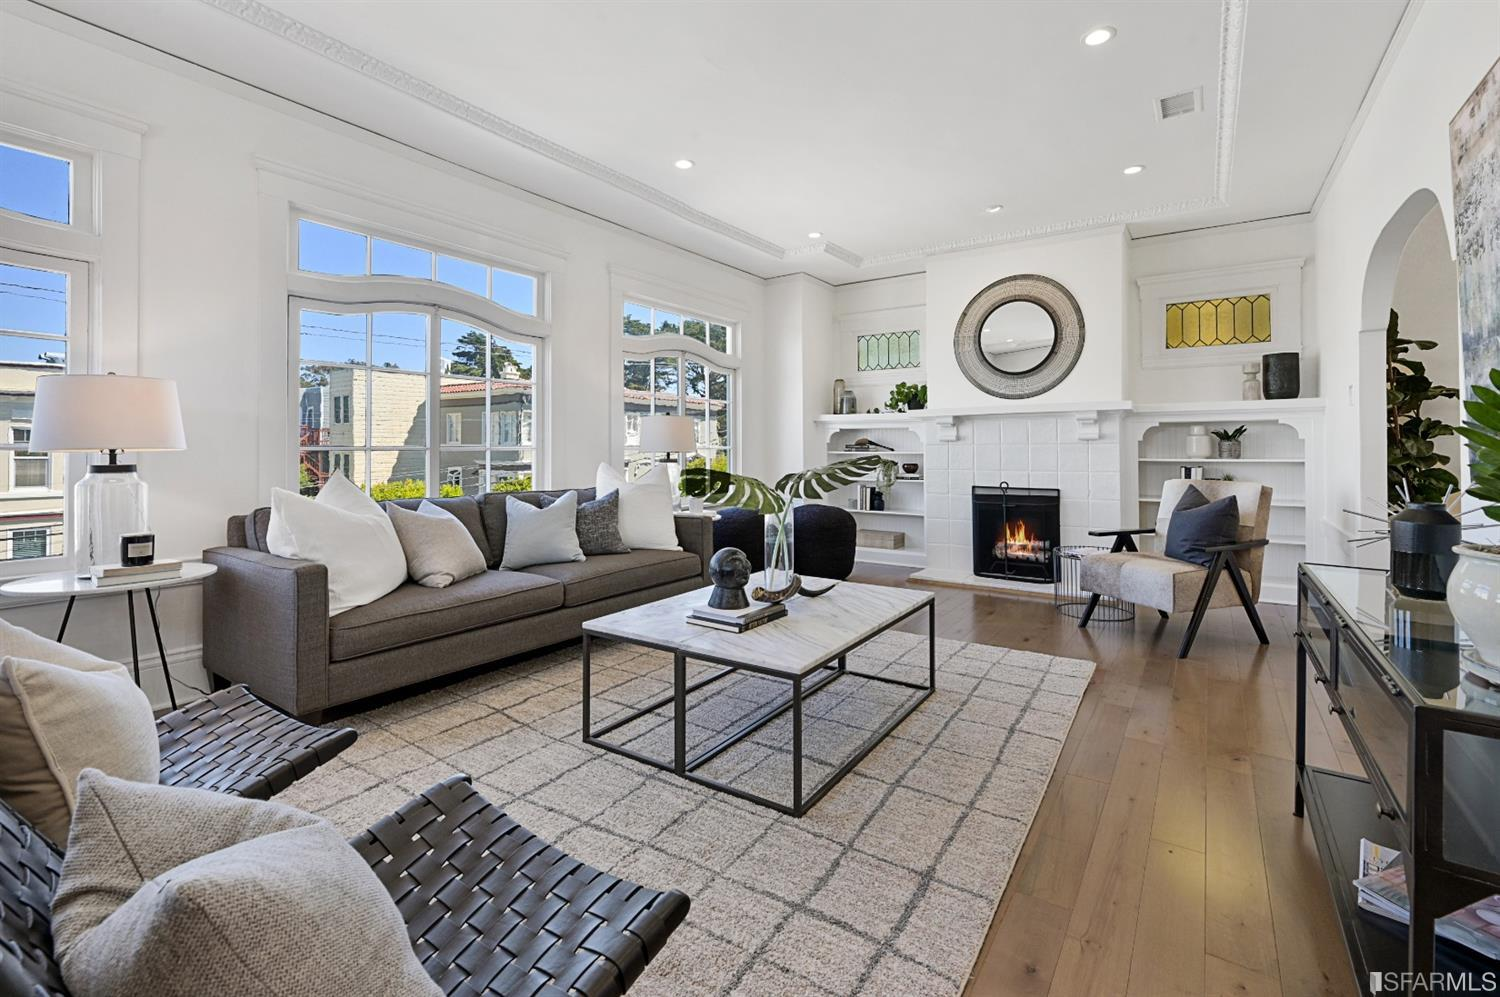 Located in the tranquil Richmond District, this bright, top-floor condo in two unit building offering 2 bedroom, sunroom, and 1.5 baths with expansive living and dining rooms throughout. Impeccable flow, wide-plank wood, generous foyer, living room with immense windows Craftsman-style fireplace, flanked leaded glass accent windows and built-in shelving. Wainscoting, period details and ornamental moldings embrace this space. Arched doorways lead to large formal dining area. Remodeled chef's kitchen with eat in area, stone countertops, stainless-steel appliances, washer/dryer closet are rigorously functional, Two bedrooms, each quite generously proportioned, with custom closet systems, offer access to a third light-filled sun room. Two bathrooms, including a powder room and a full bath. ADDITIONAL 200 square foot multi-purpose room off the garage, one car independent parking, shared spacious backyard deck and patio. Perfect central location, this condo has it all.